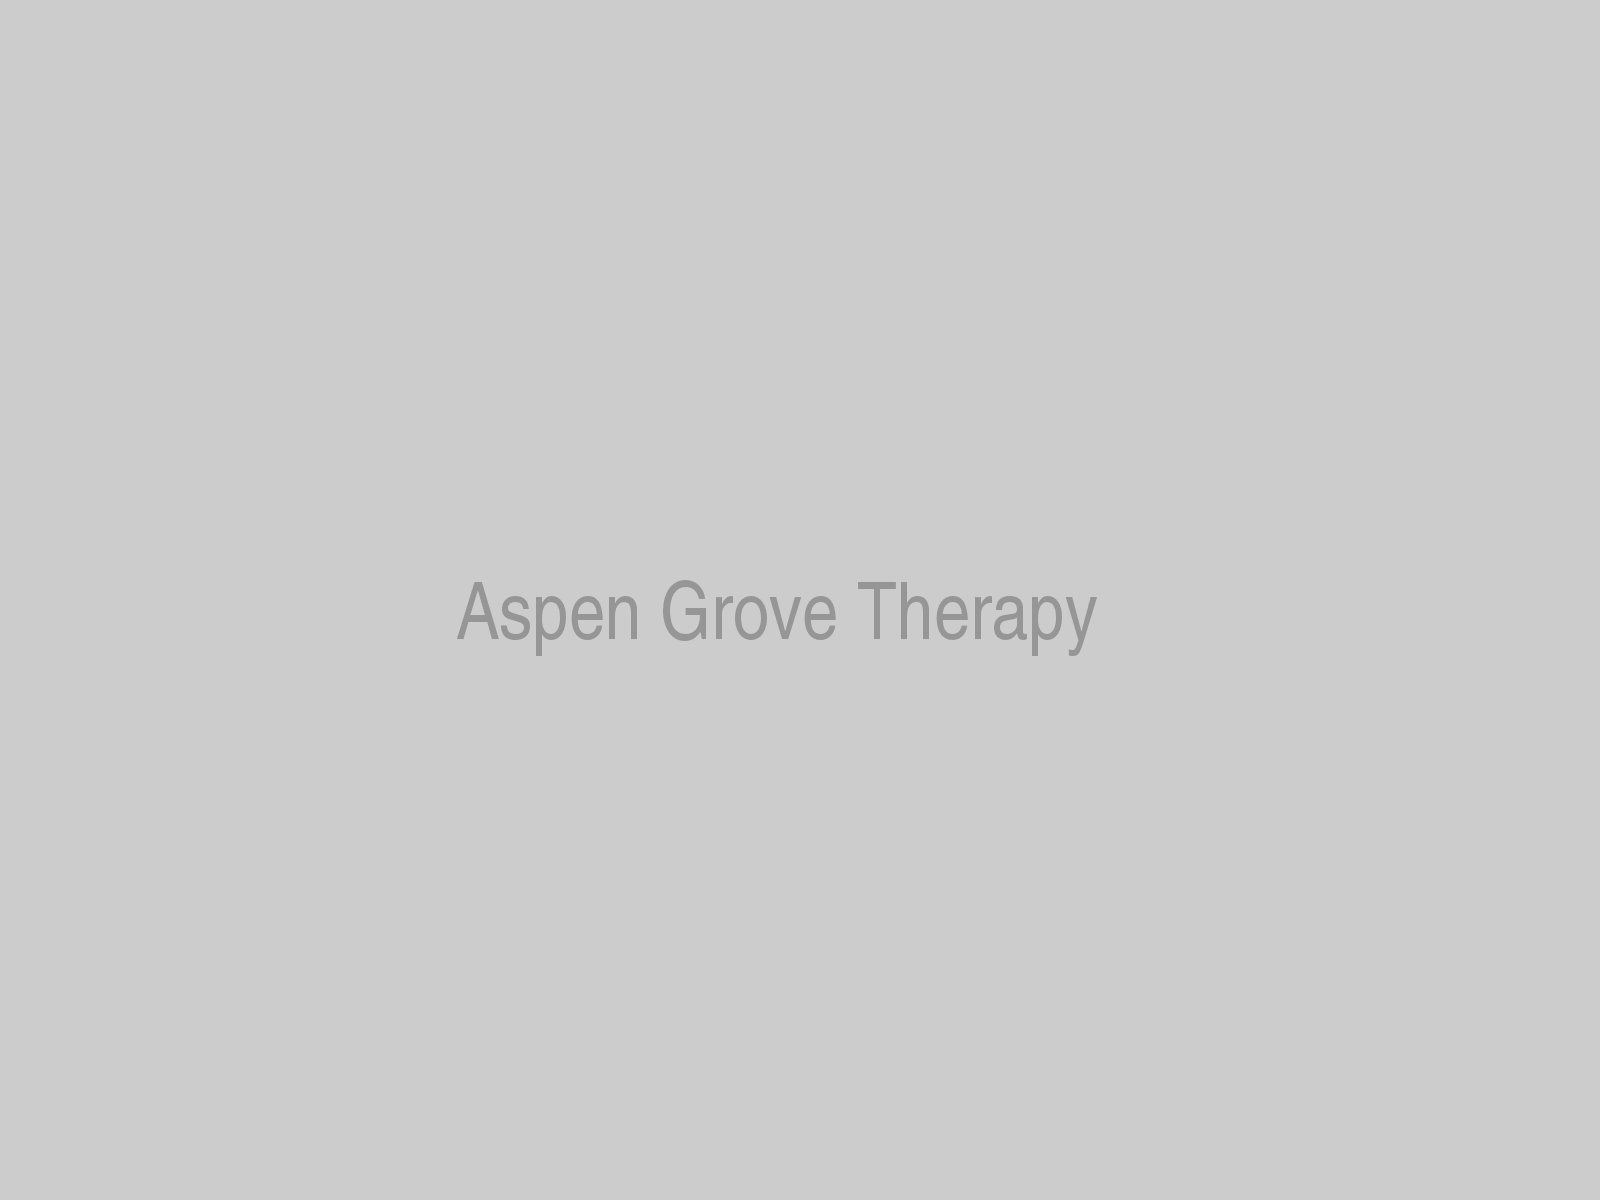 Aspen Grove Therapy & Wellness Center